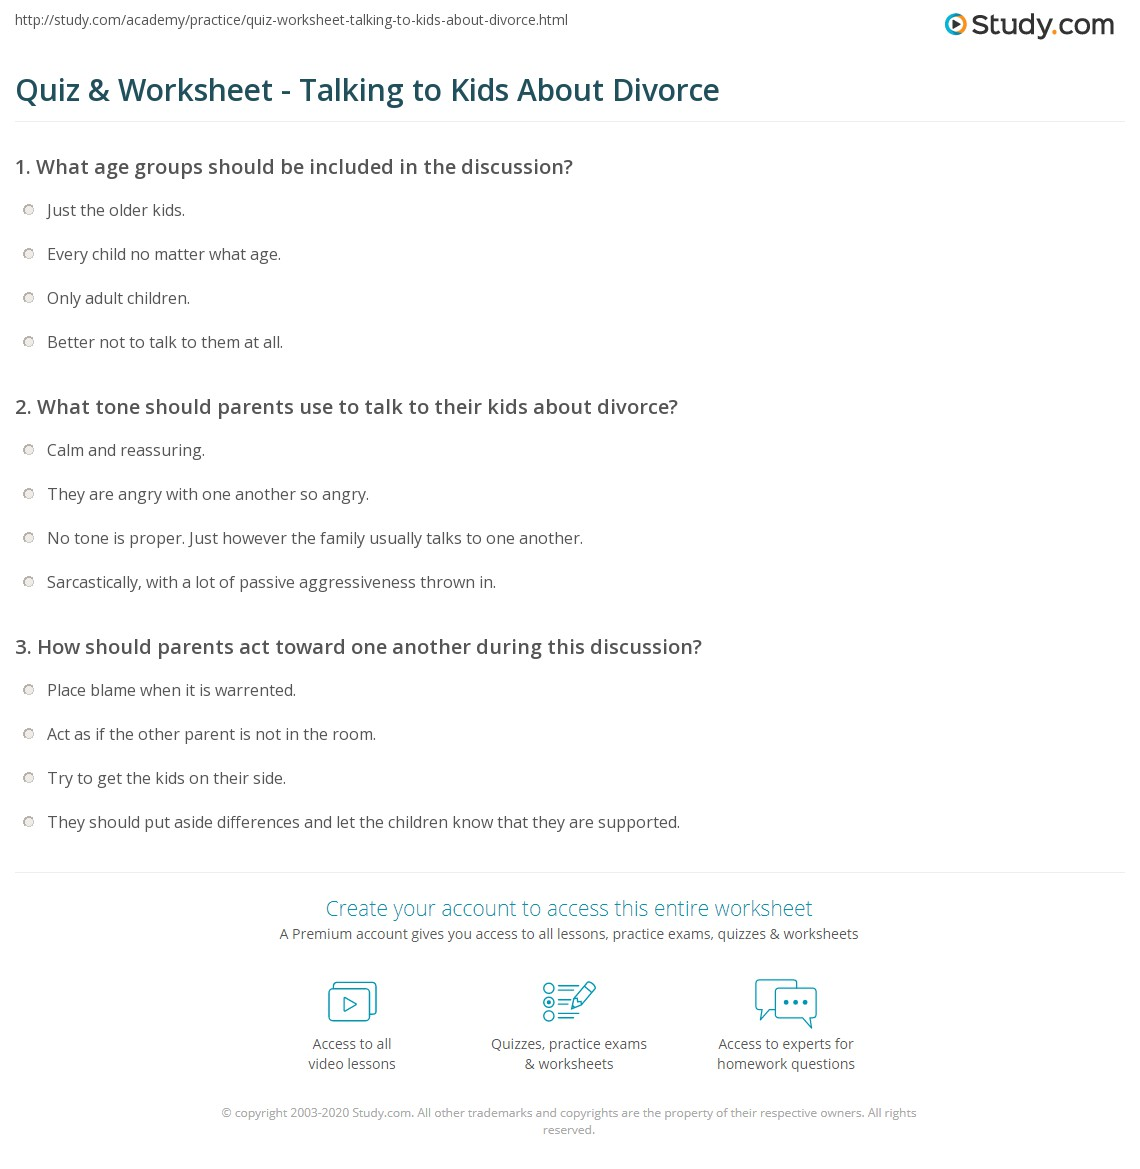 How to talk to children about divorce 74